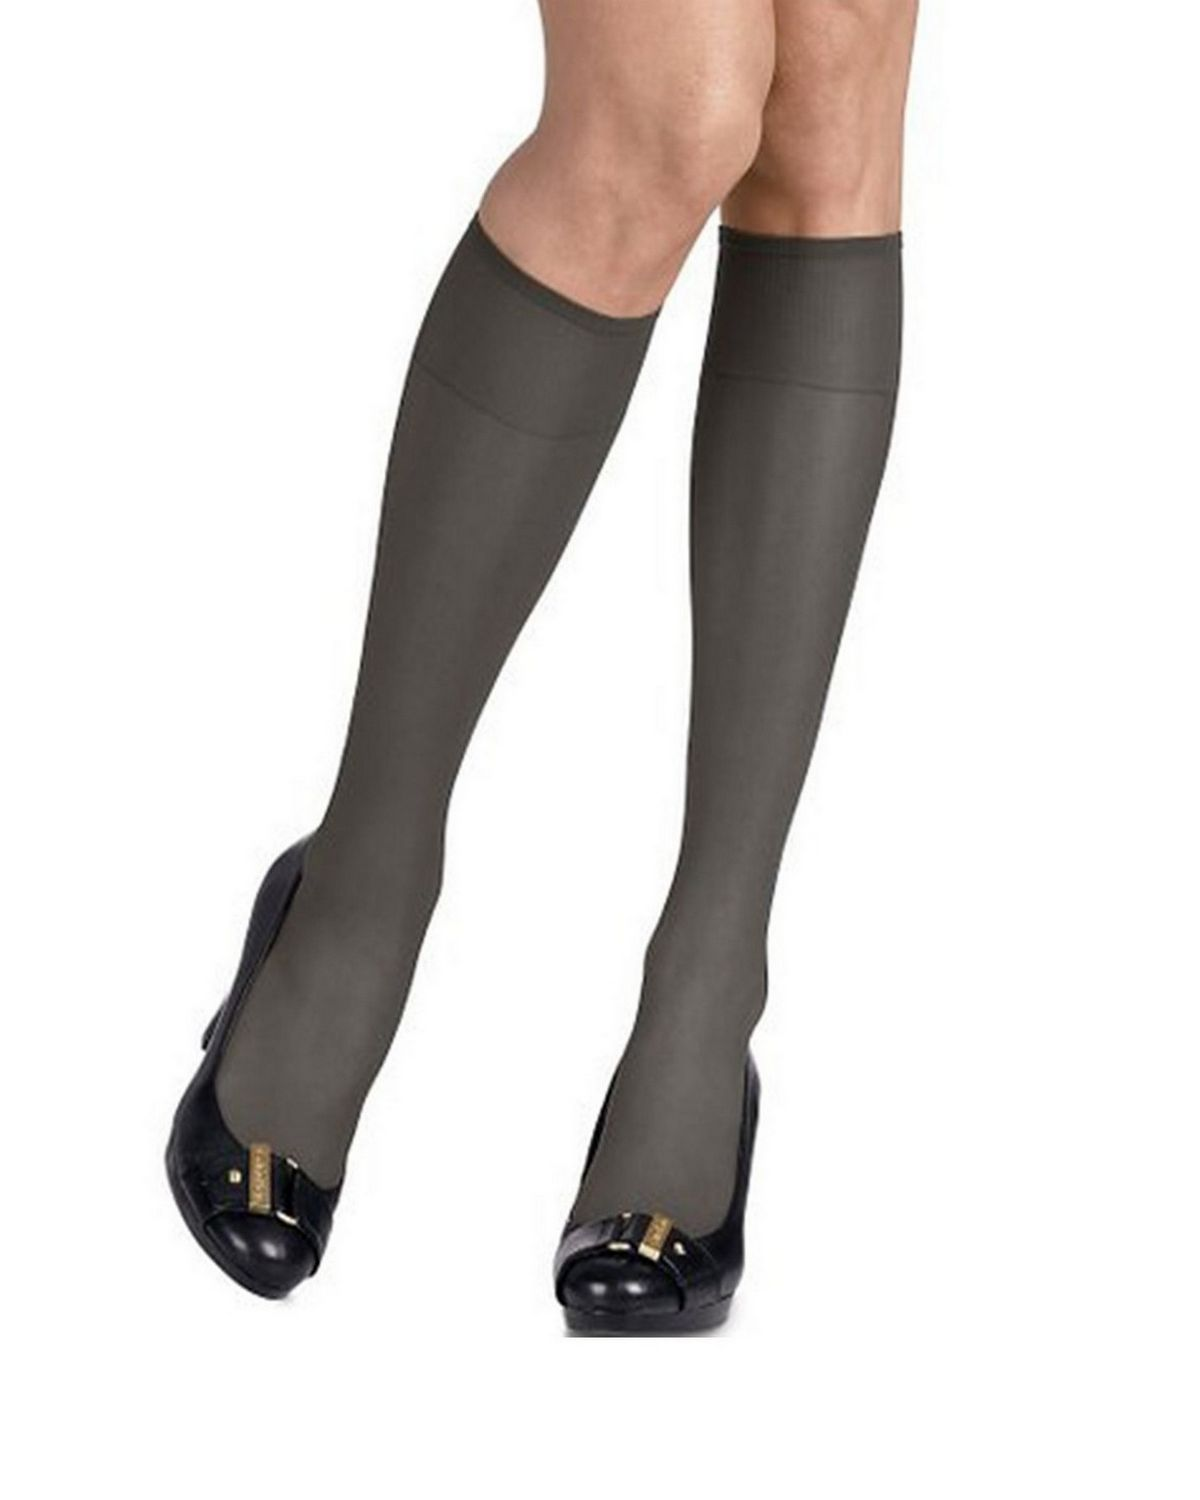 Hanes 725 Women's Silk Reflections Silky Sheer Knee Highs 2-Pack - Jet - One Size #silk